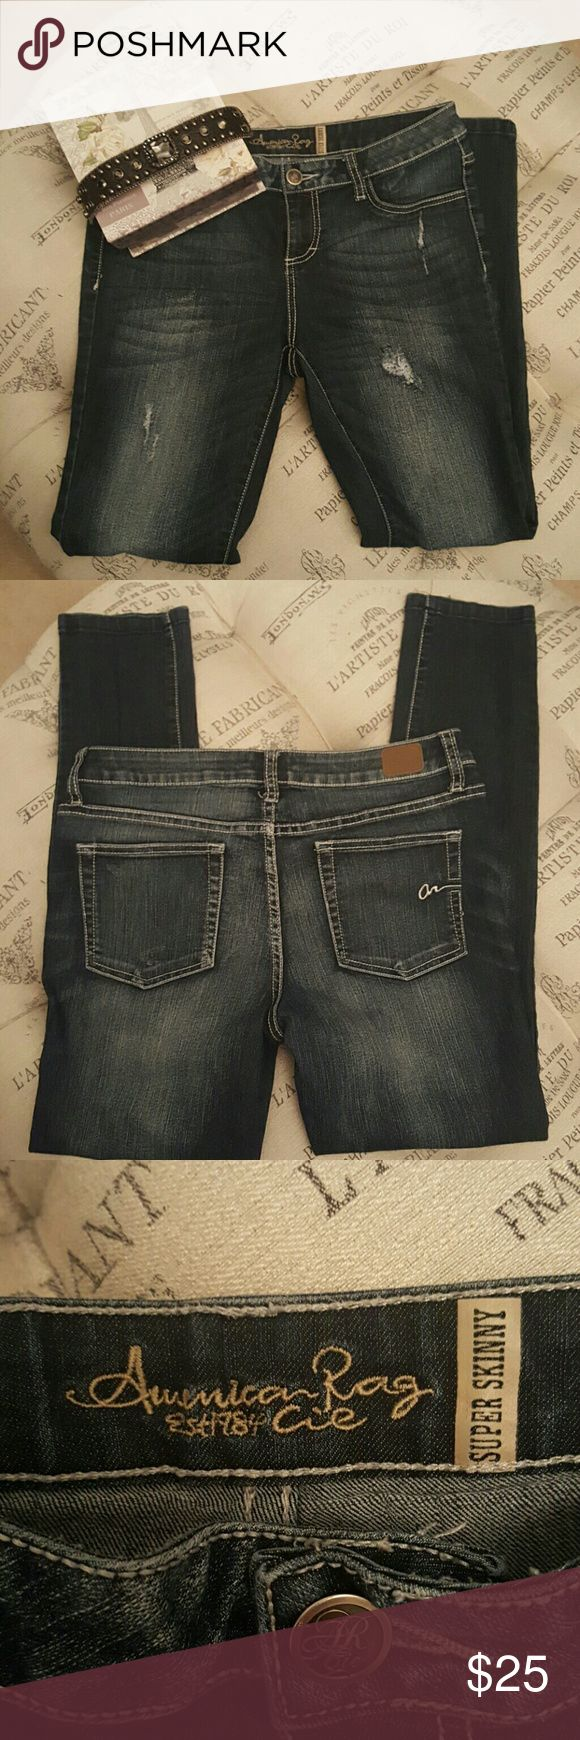 American Rag Distressed Jeans Distressed denim super soft skinny. Purchased in  macys junior Dept. I'm a,size,8 in women's and these fit perfectly. Looks fabulous tucked into your favorite pair of tall boots! American Rag  Jeans Skinny